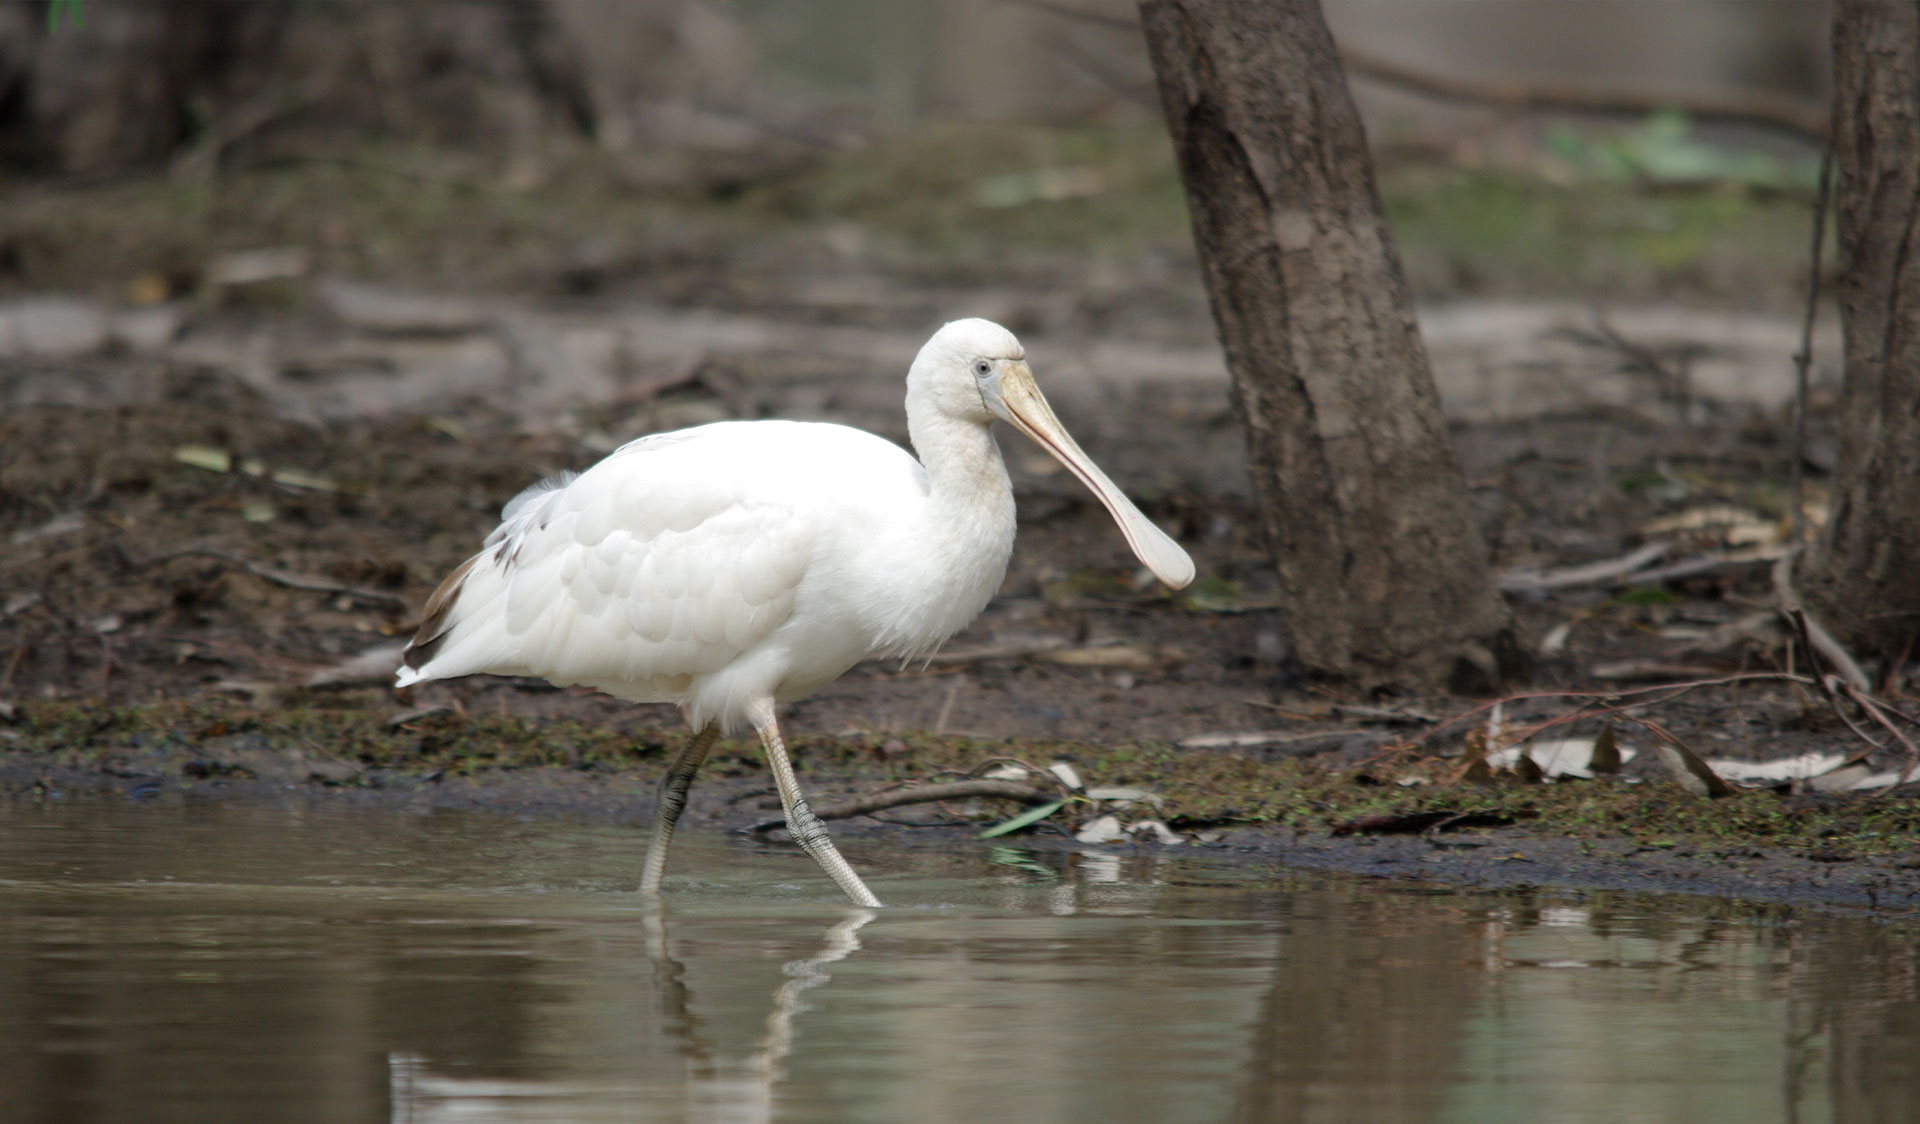 A spoonbill wades through water near the rivers edge at Barmah National Park